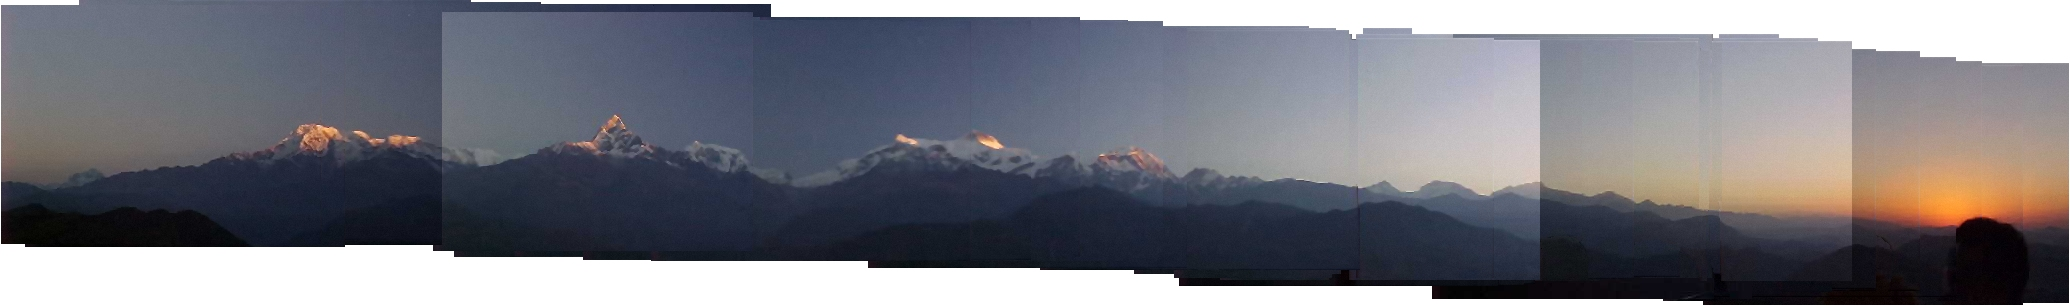 Panorama of the annapurna range from the top of Sarangkot